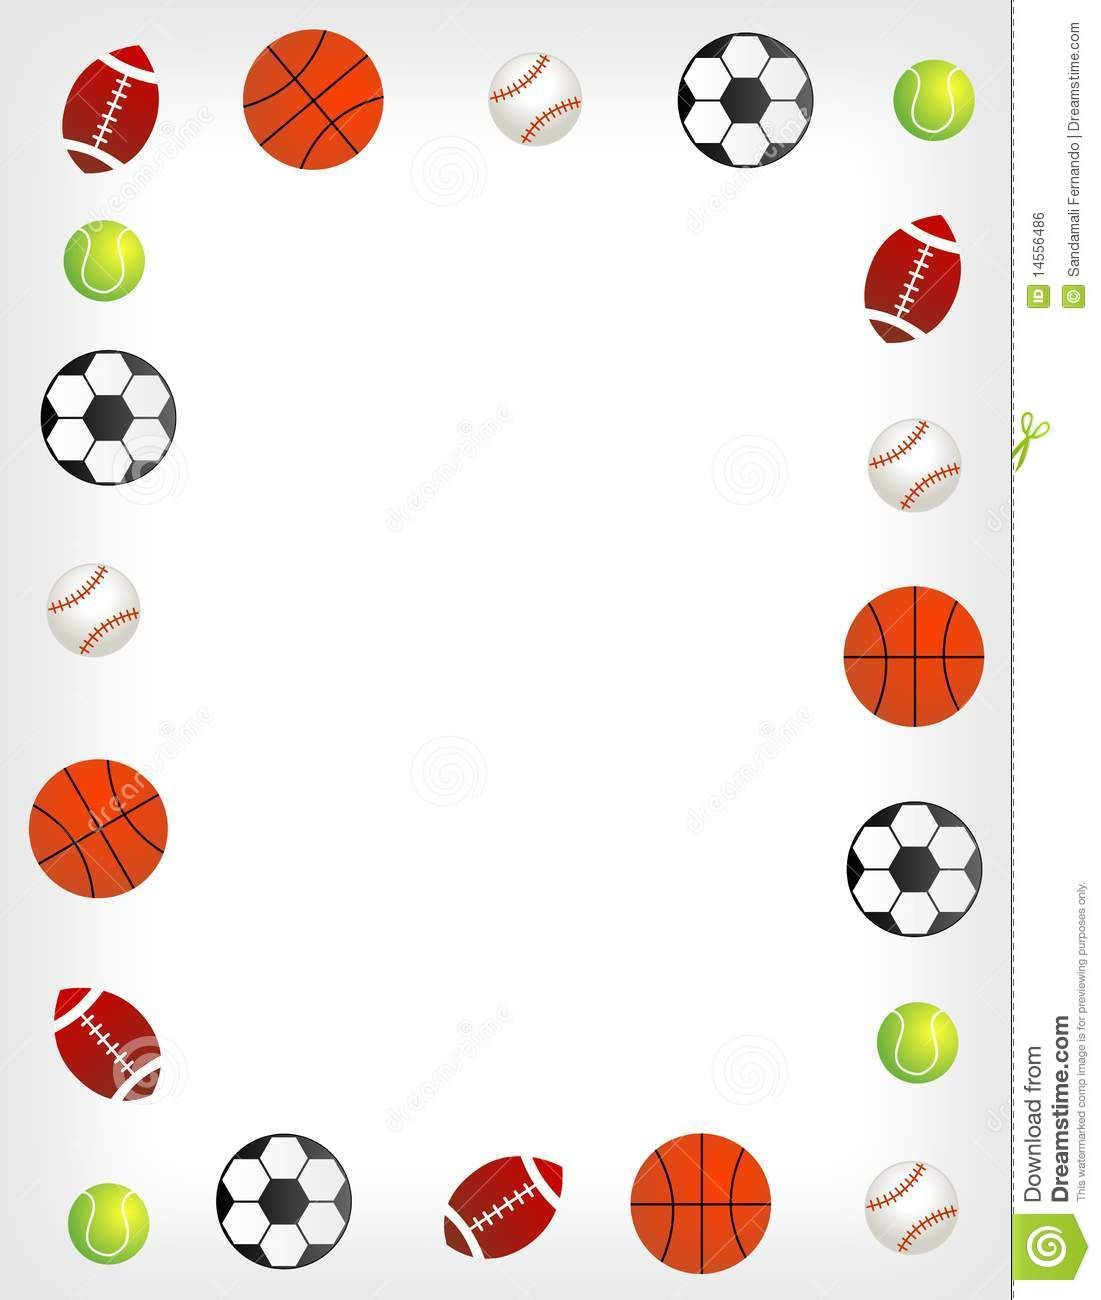 sports border clip art five different sport balls border frame rh pinterest com Sports Balls Clip Art sports clip art borders free